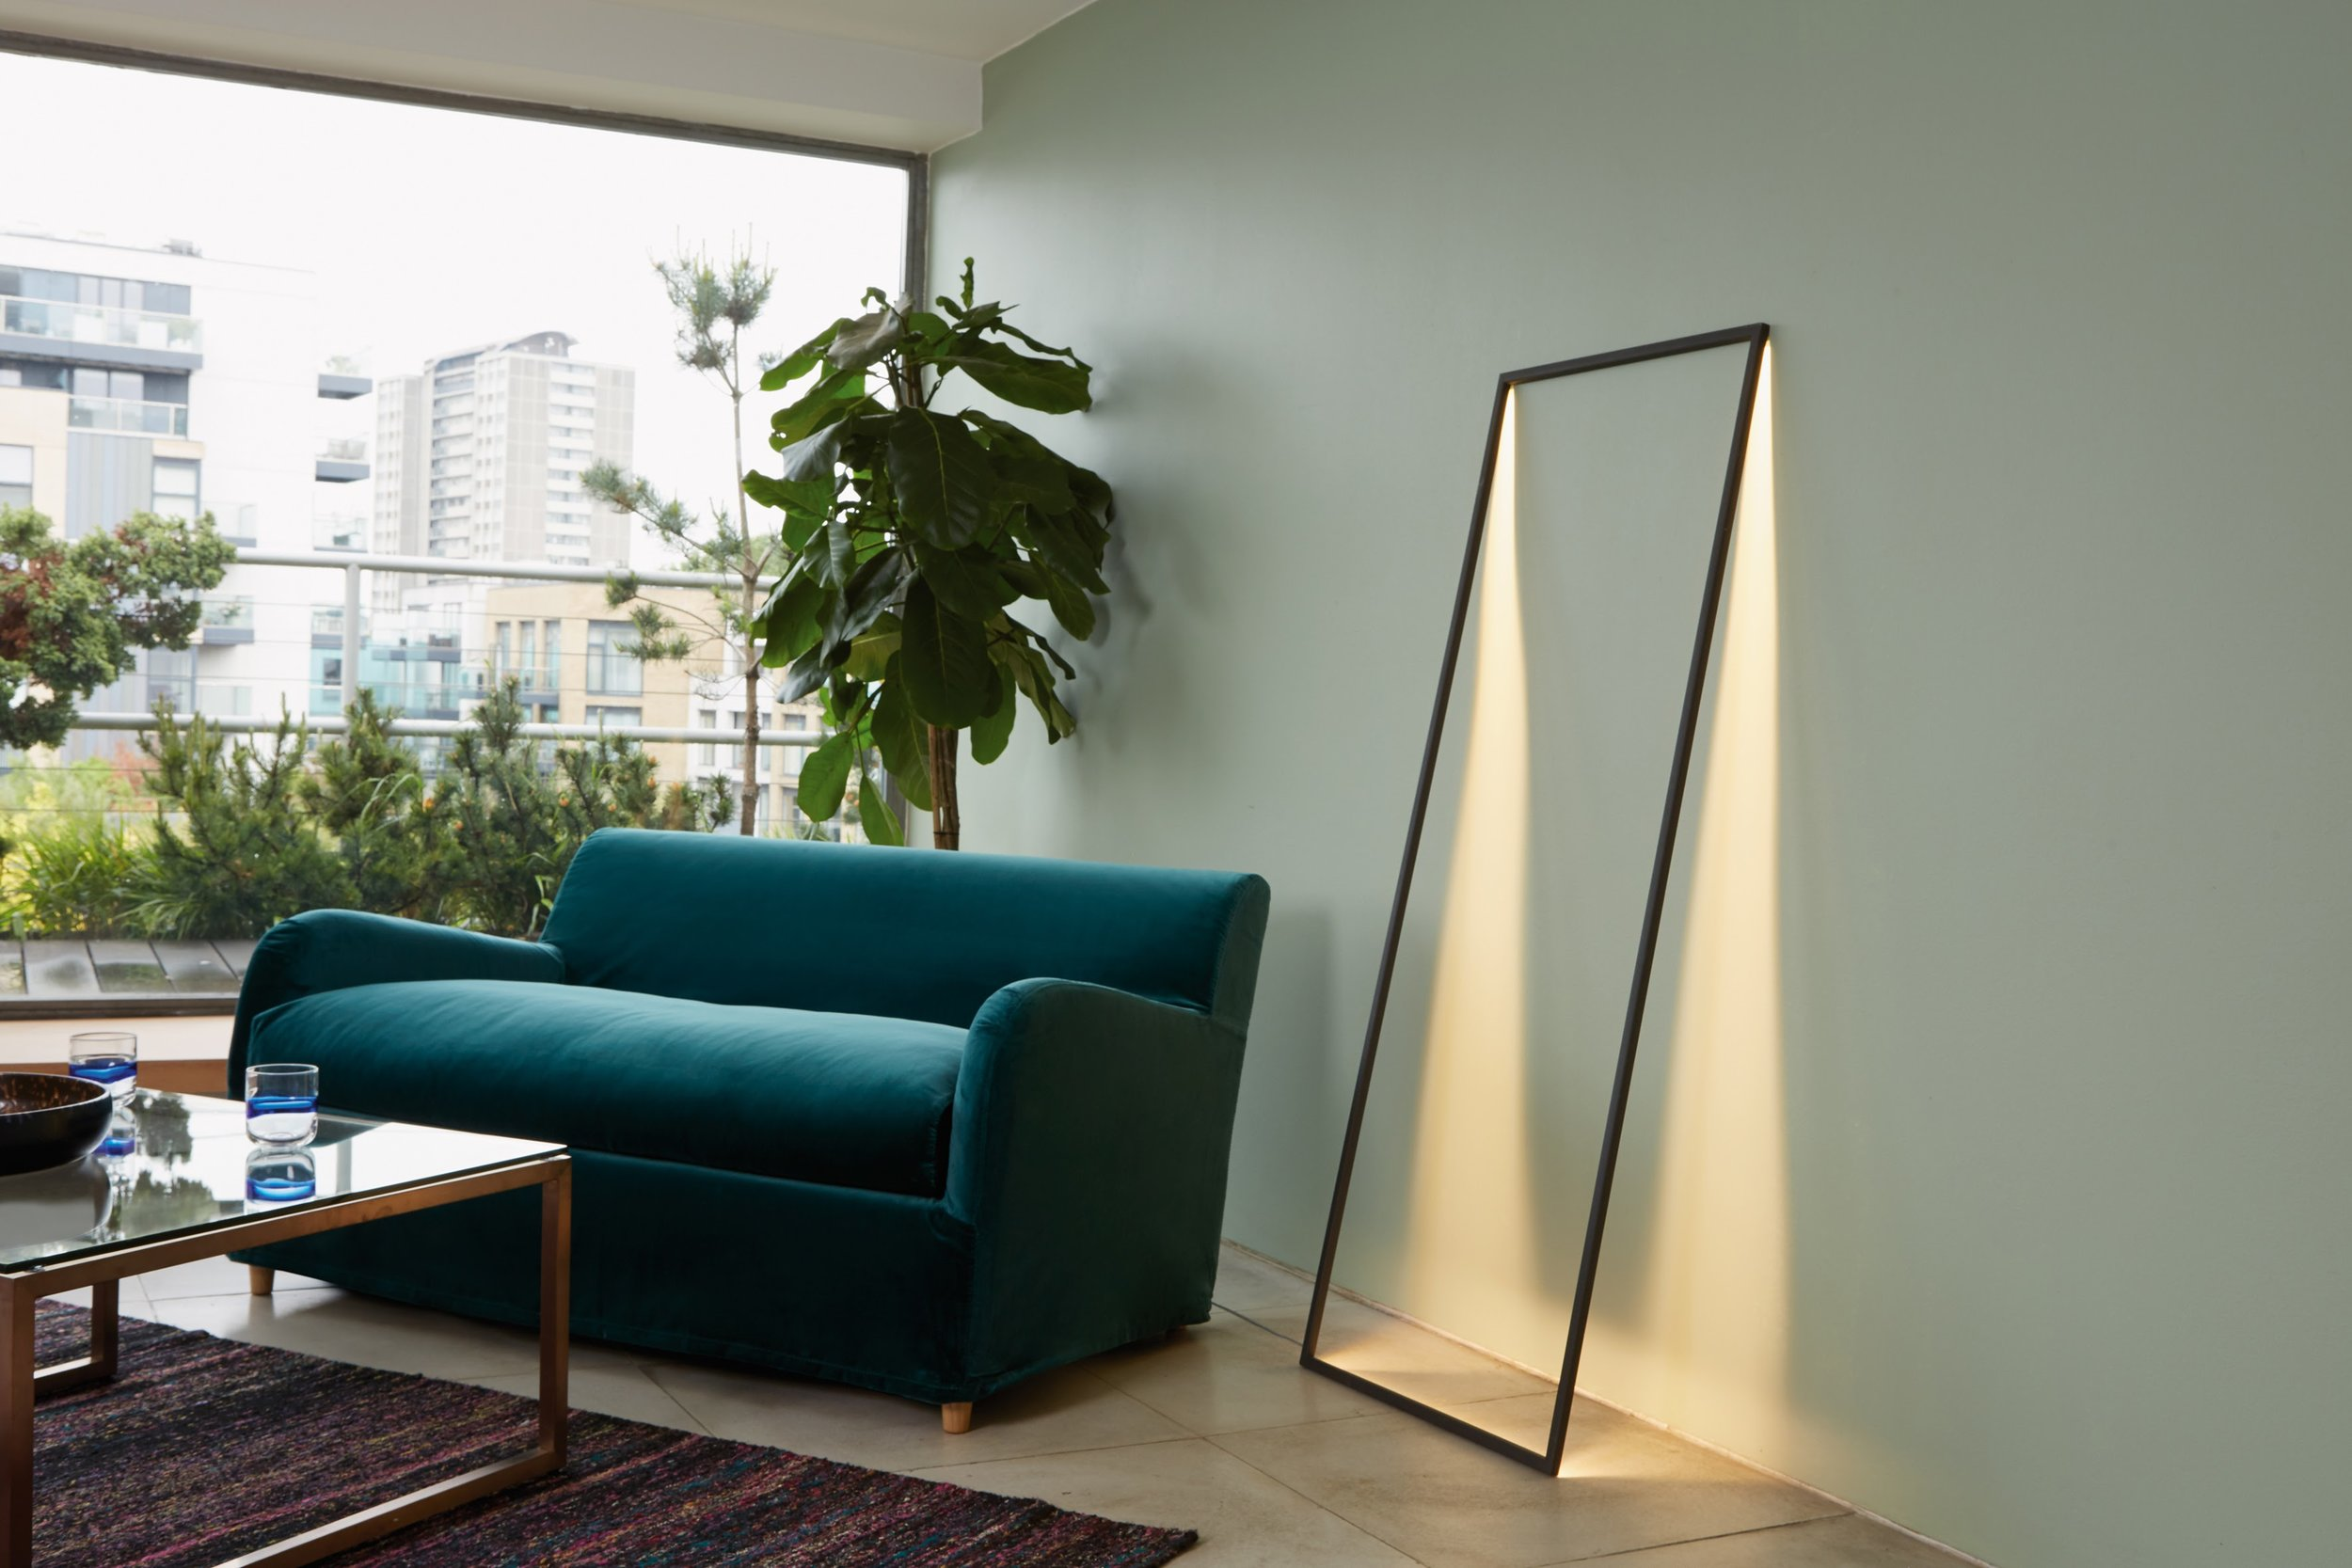 Habitat's Shadow floor lamp - If you want your lighting dramatic, look no further than this visually dazzling piece from Habitat. The Shadow floor lamp is designed as a hollow frame whose thin LED strips cast slices of light against the wall and floor, creating a vivid and conceptual experience. Available for £175 from www.habitat.co.uk, it's a must-have statement installation piece for lovers of art and architecture, and will add a real 'wow' factor to any room in the house!